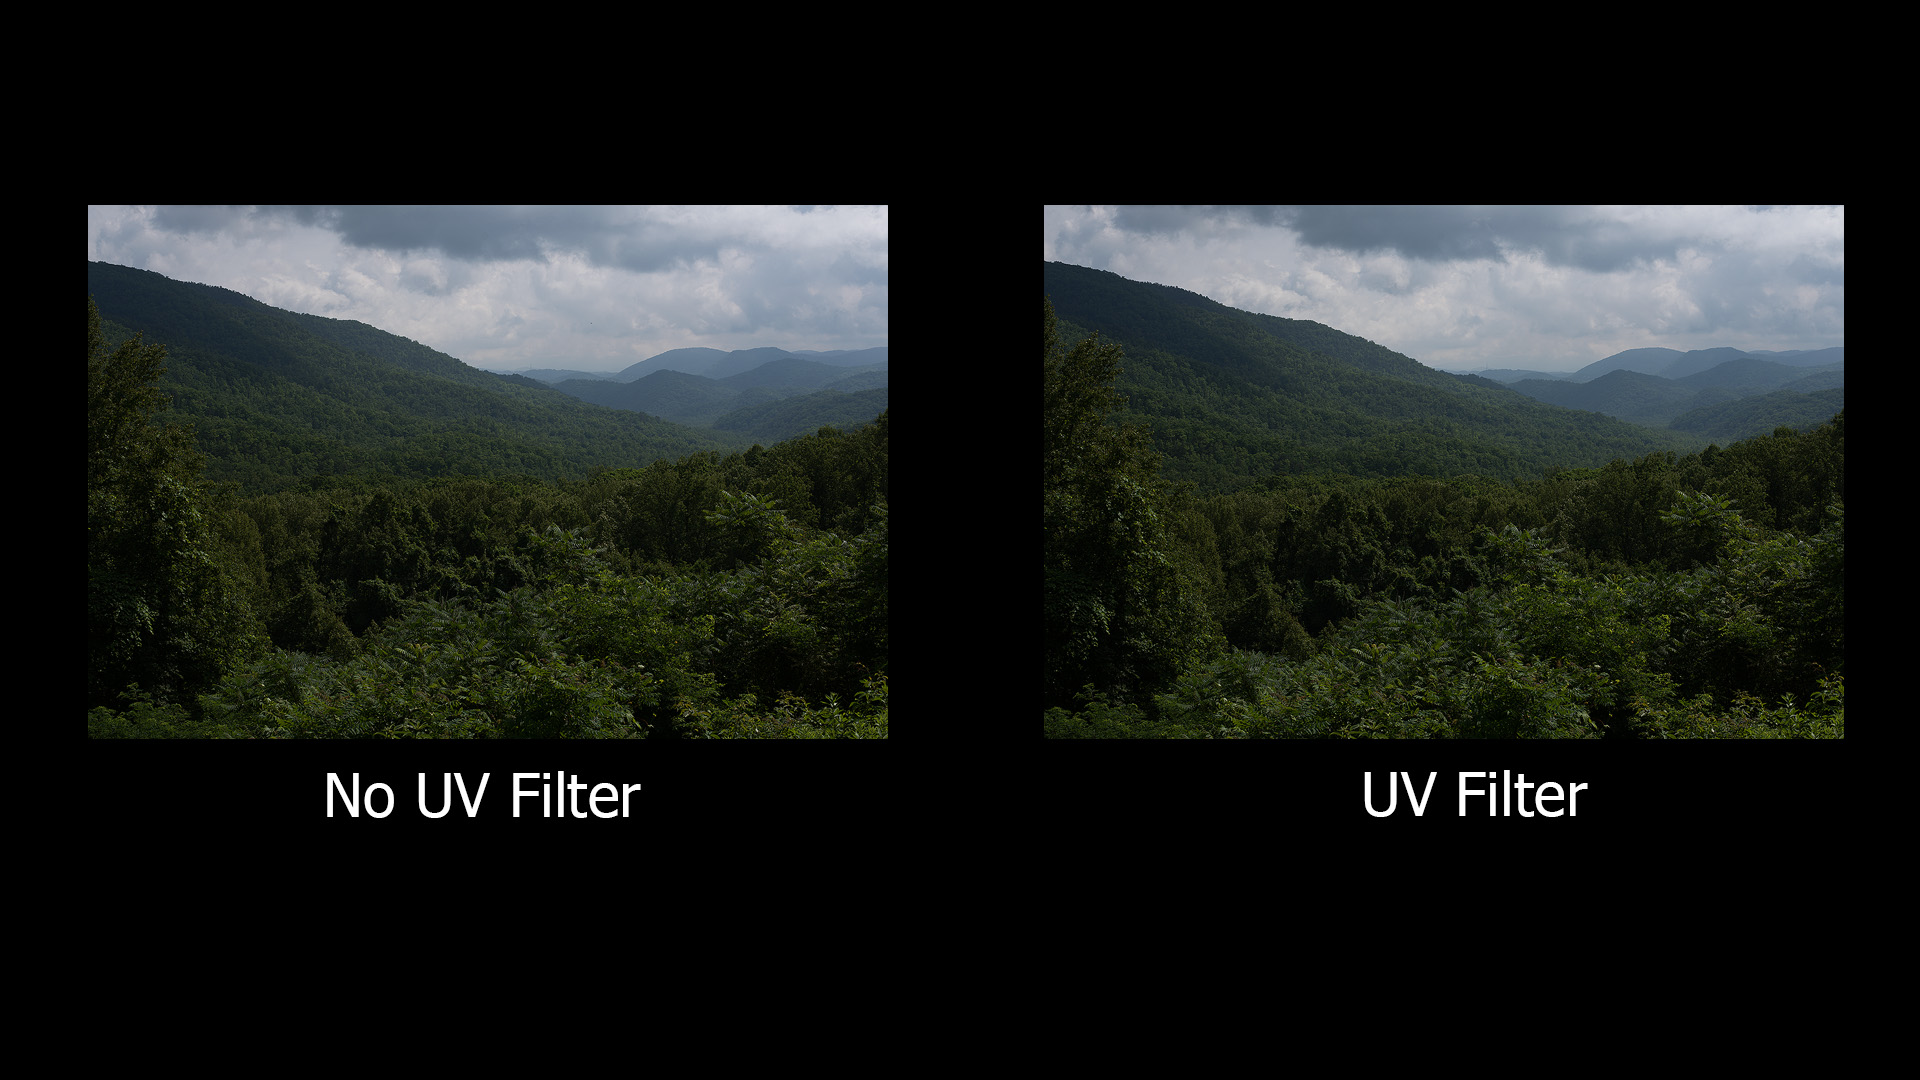 uv vs non-uv color comparison